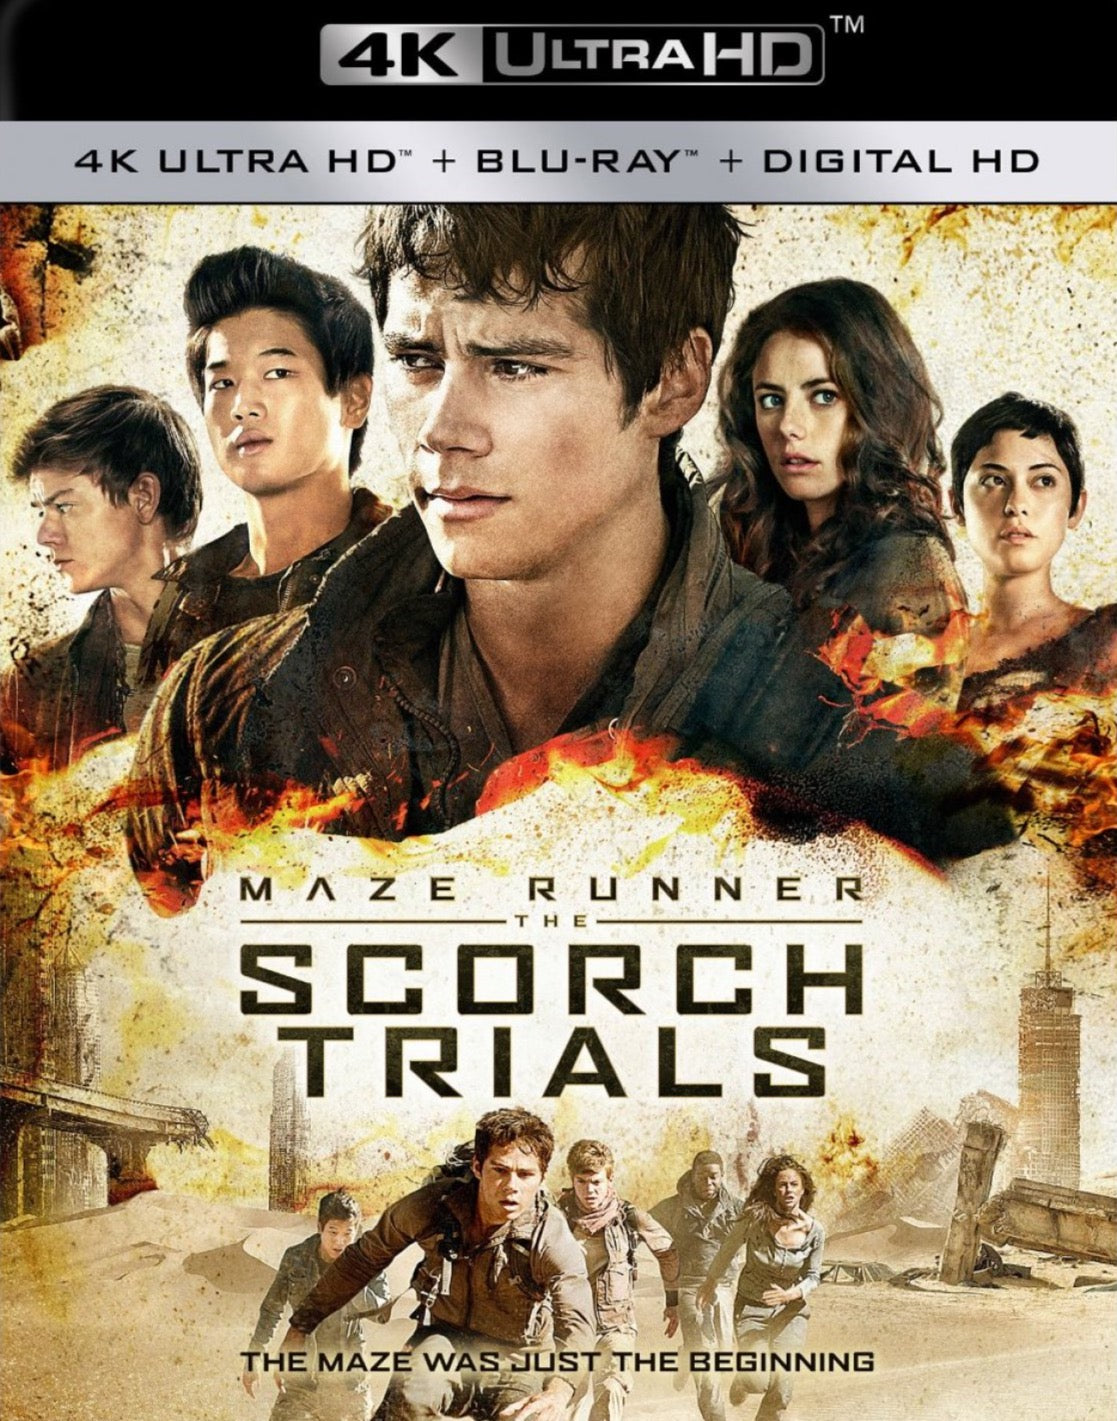 Maze Runner: The Scorch Trials (2015: Ports Via MA) iTunes 4K or Vudu / Movies Anywhere HD code